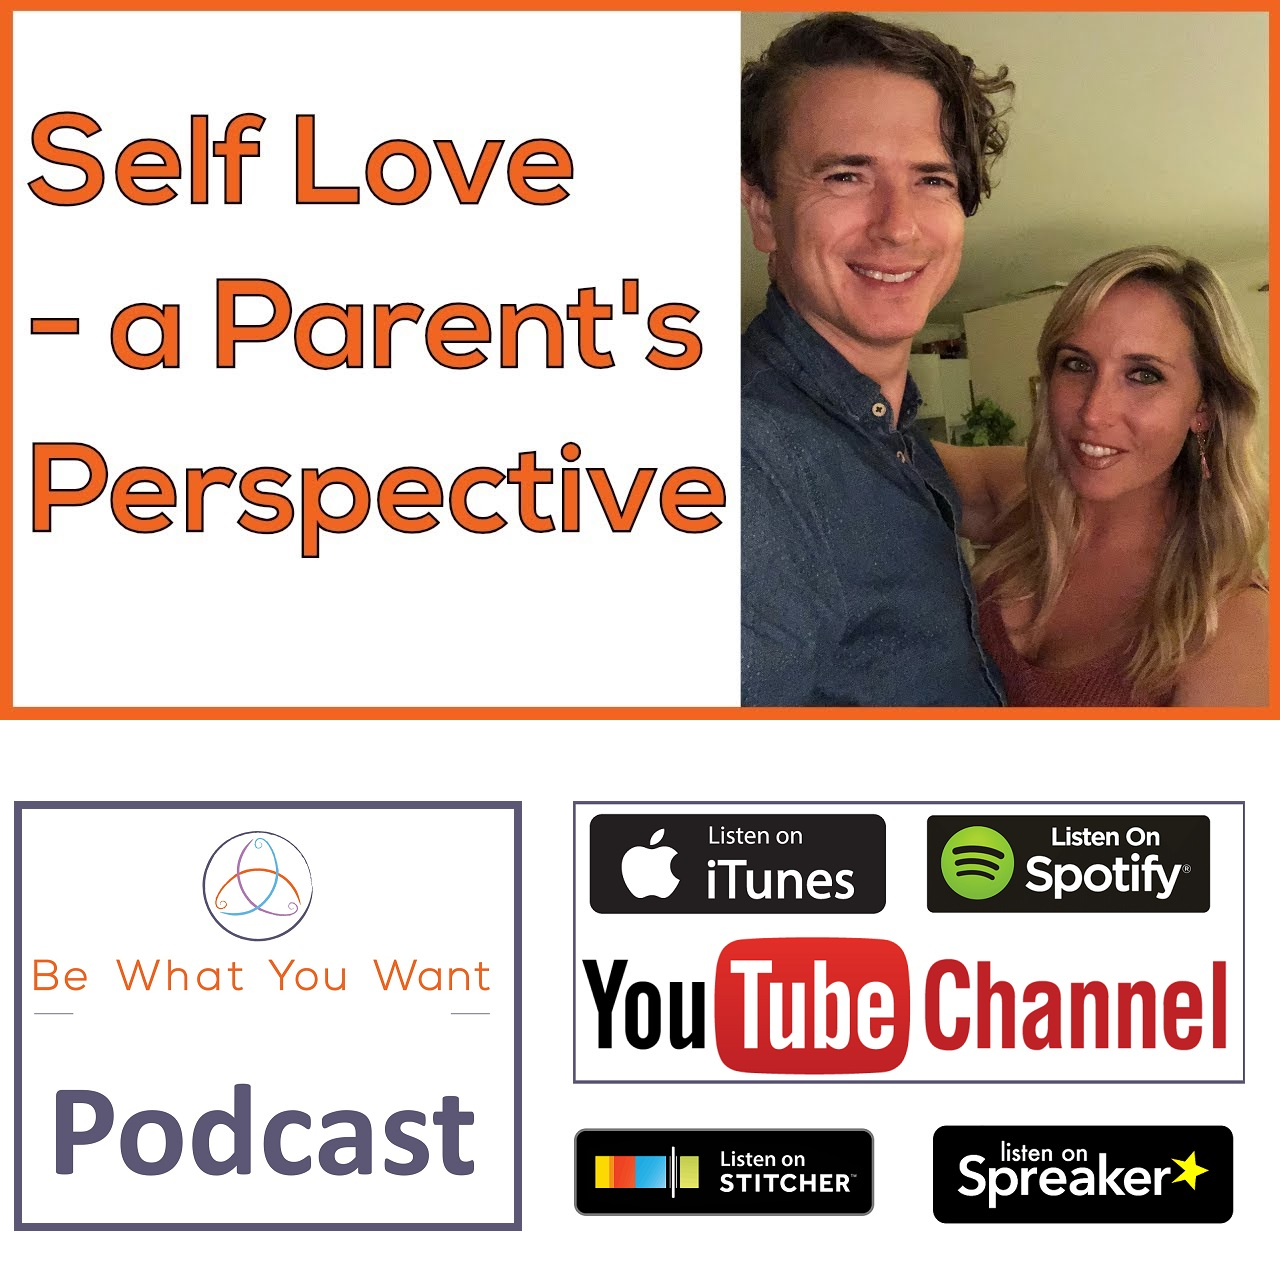 Self-Love - a Parent's Perspective